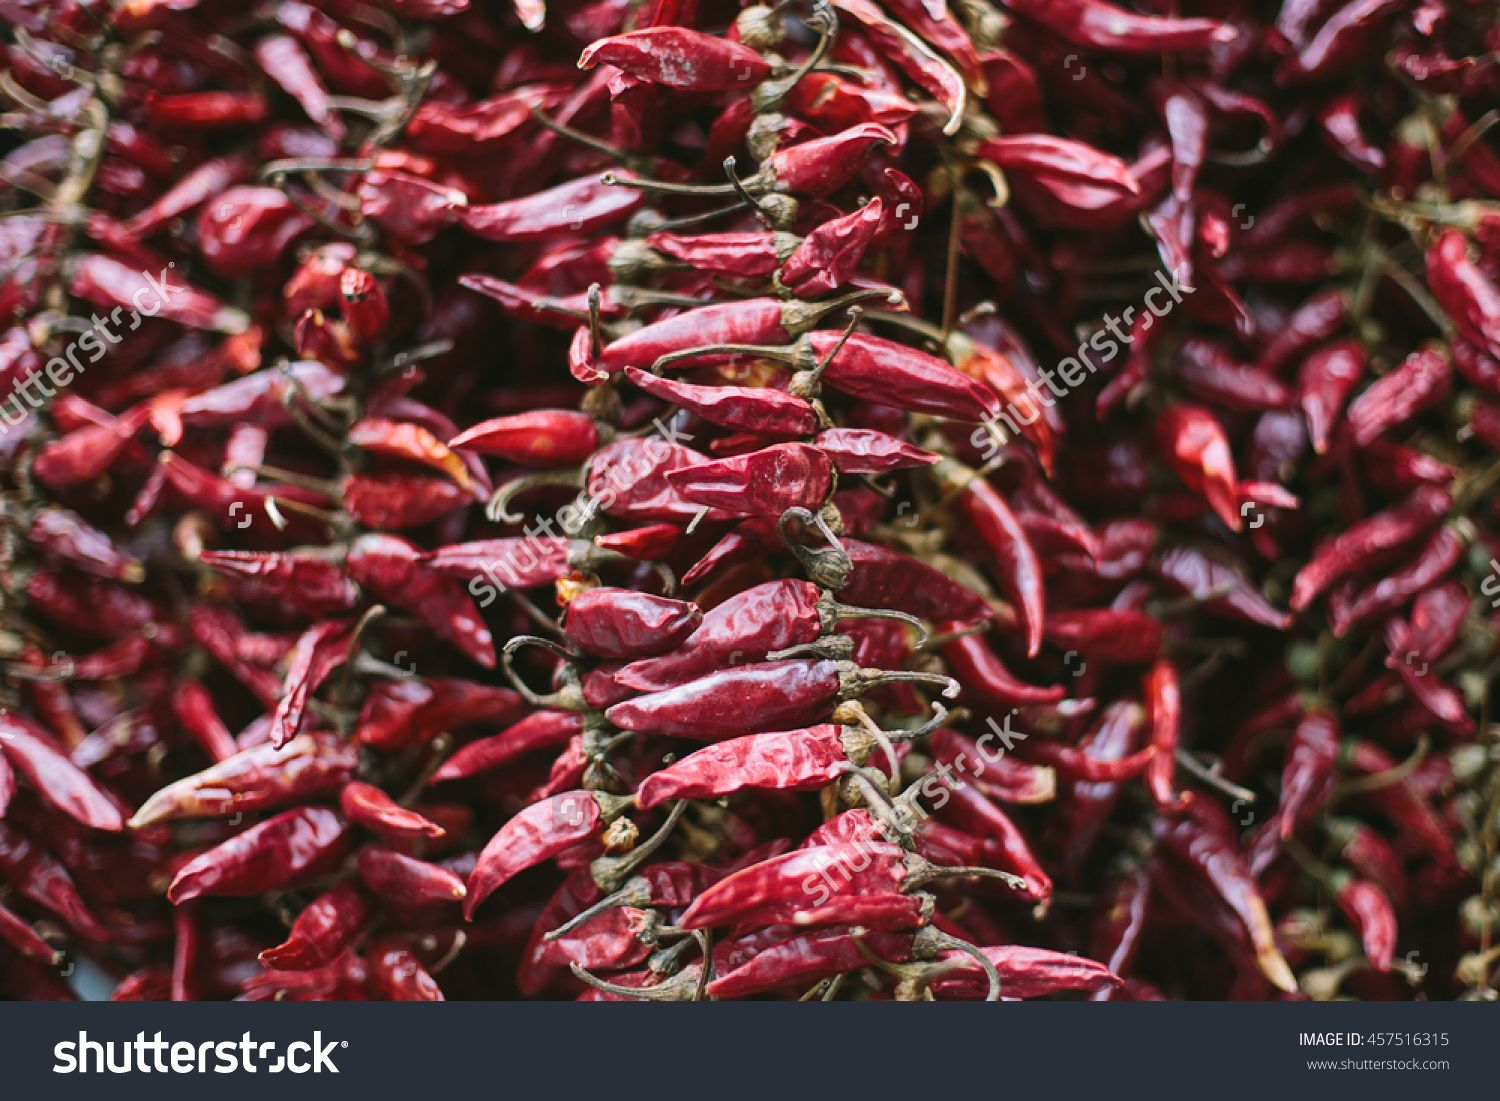 Whole Red Chili Peppers On The Market Hanging. Background